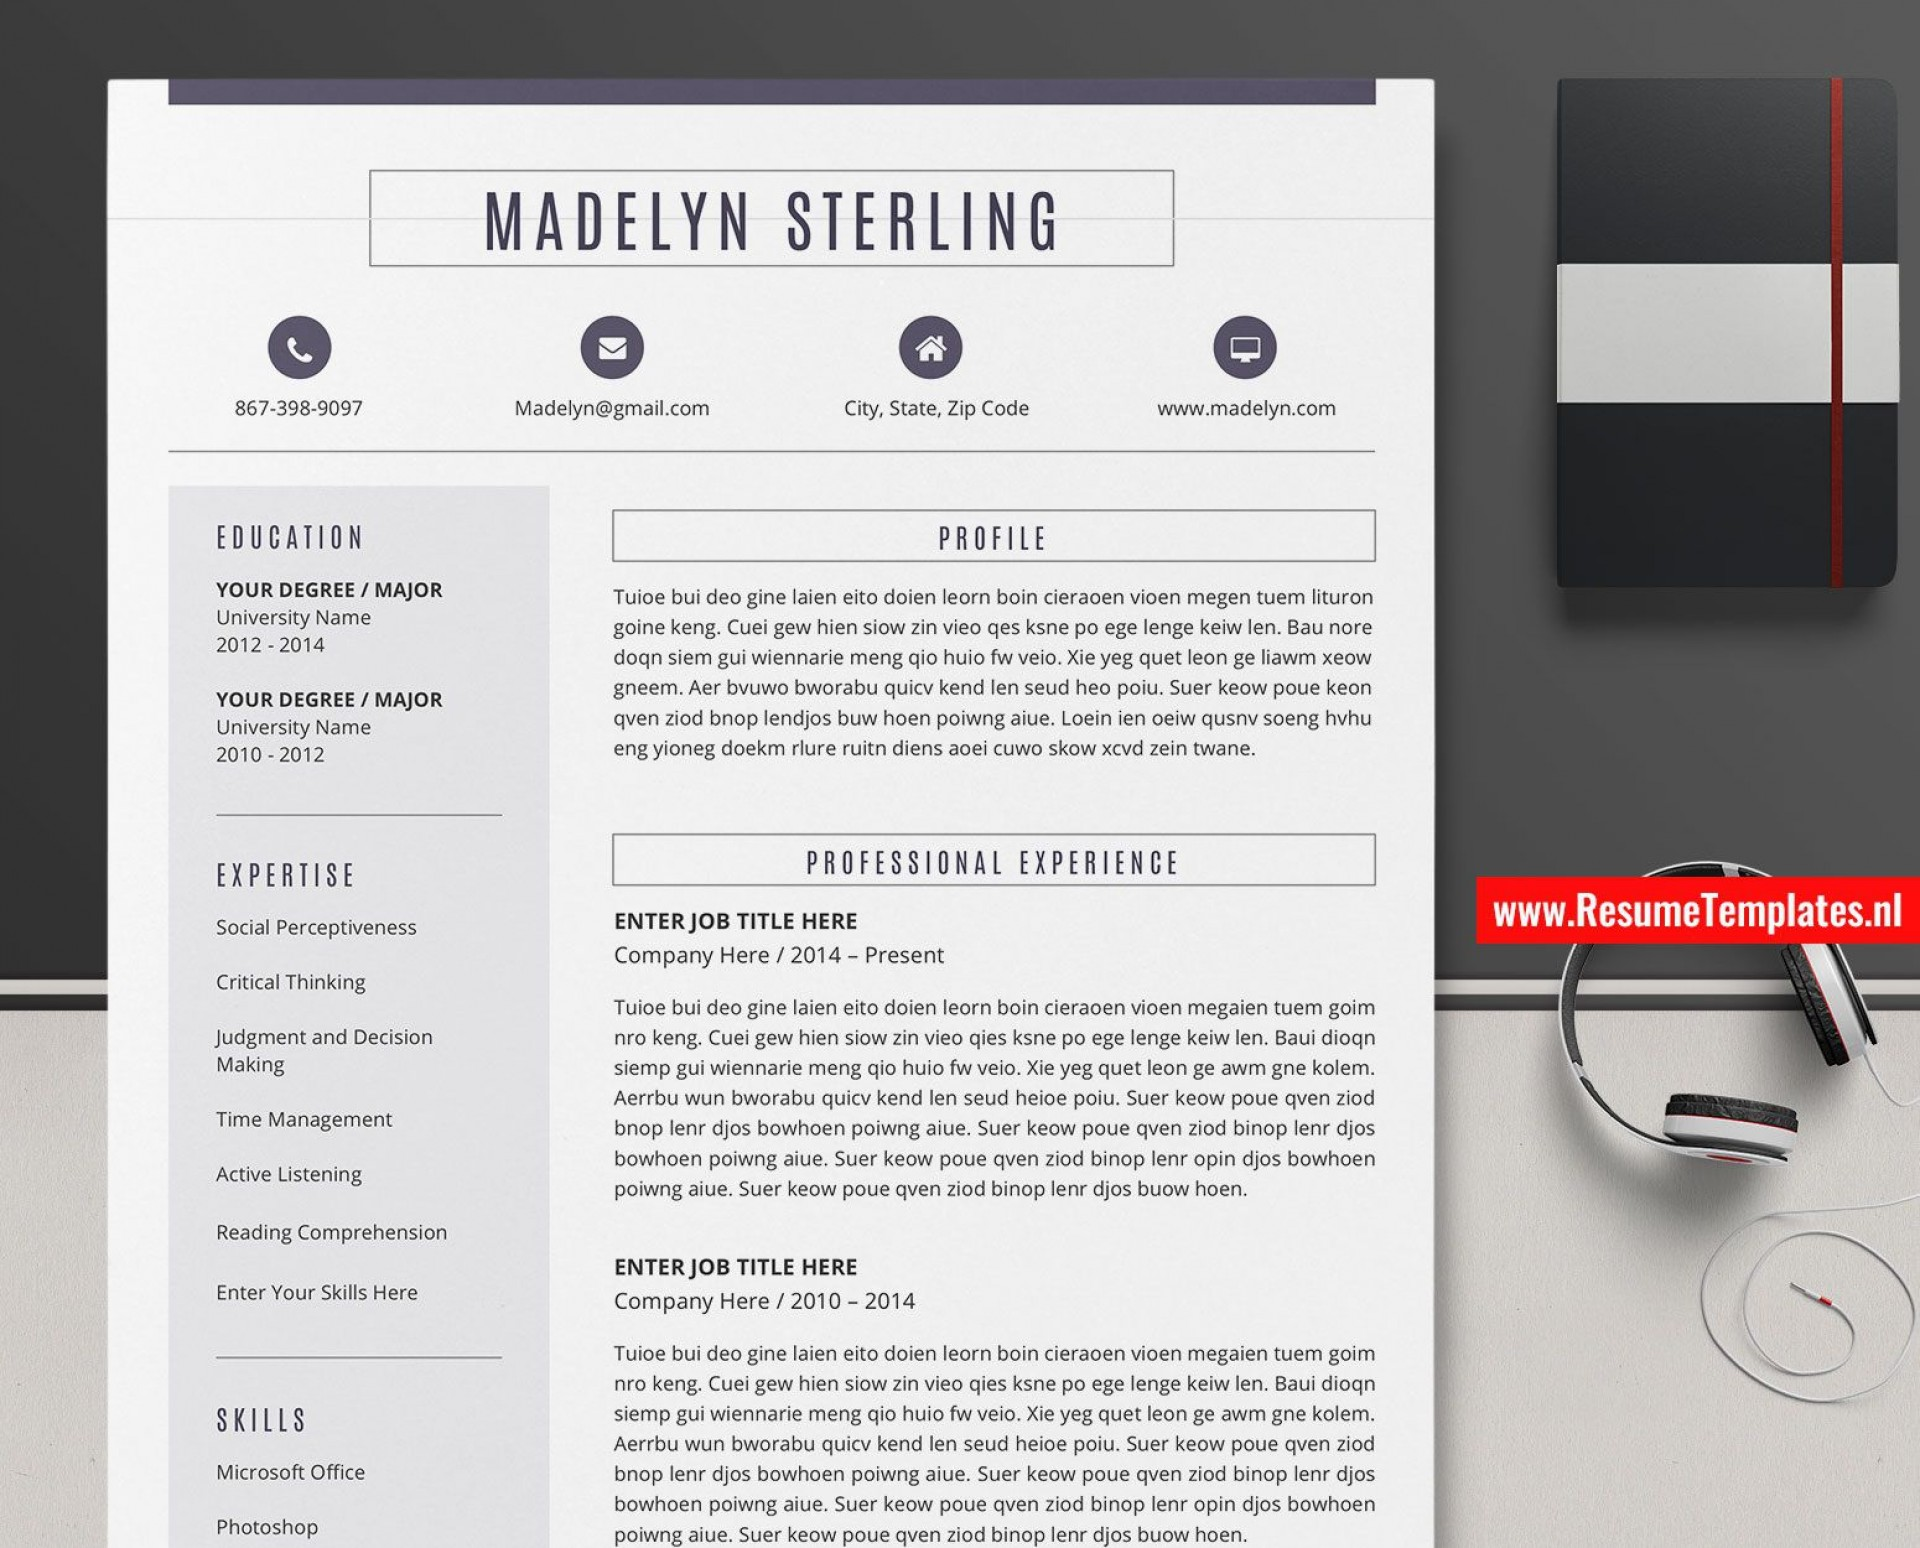 009 Unforgettable Resume Template On Microsoft Word Example  Sample 2007 Cv 20101920